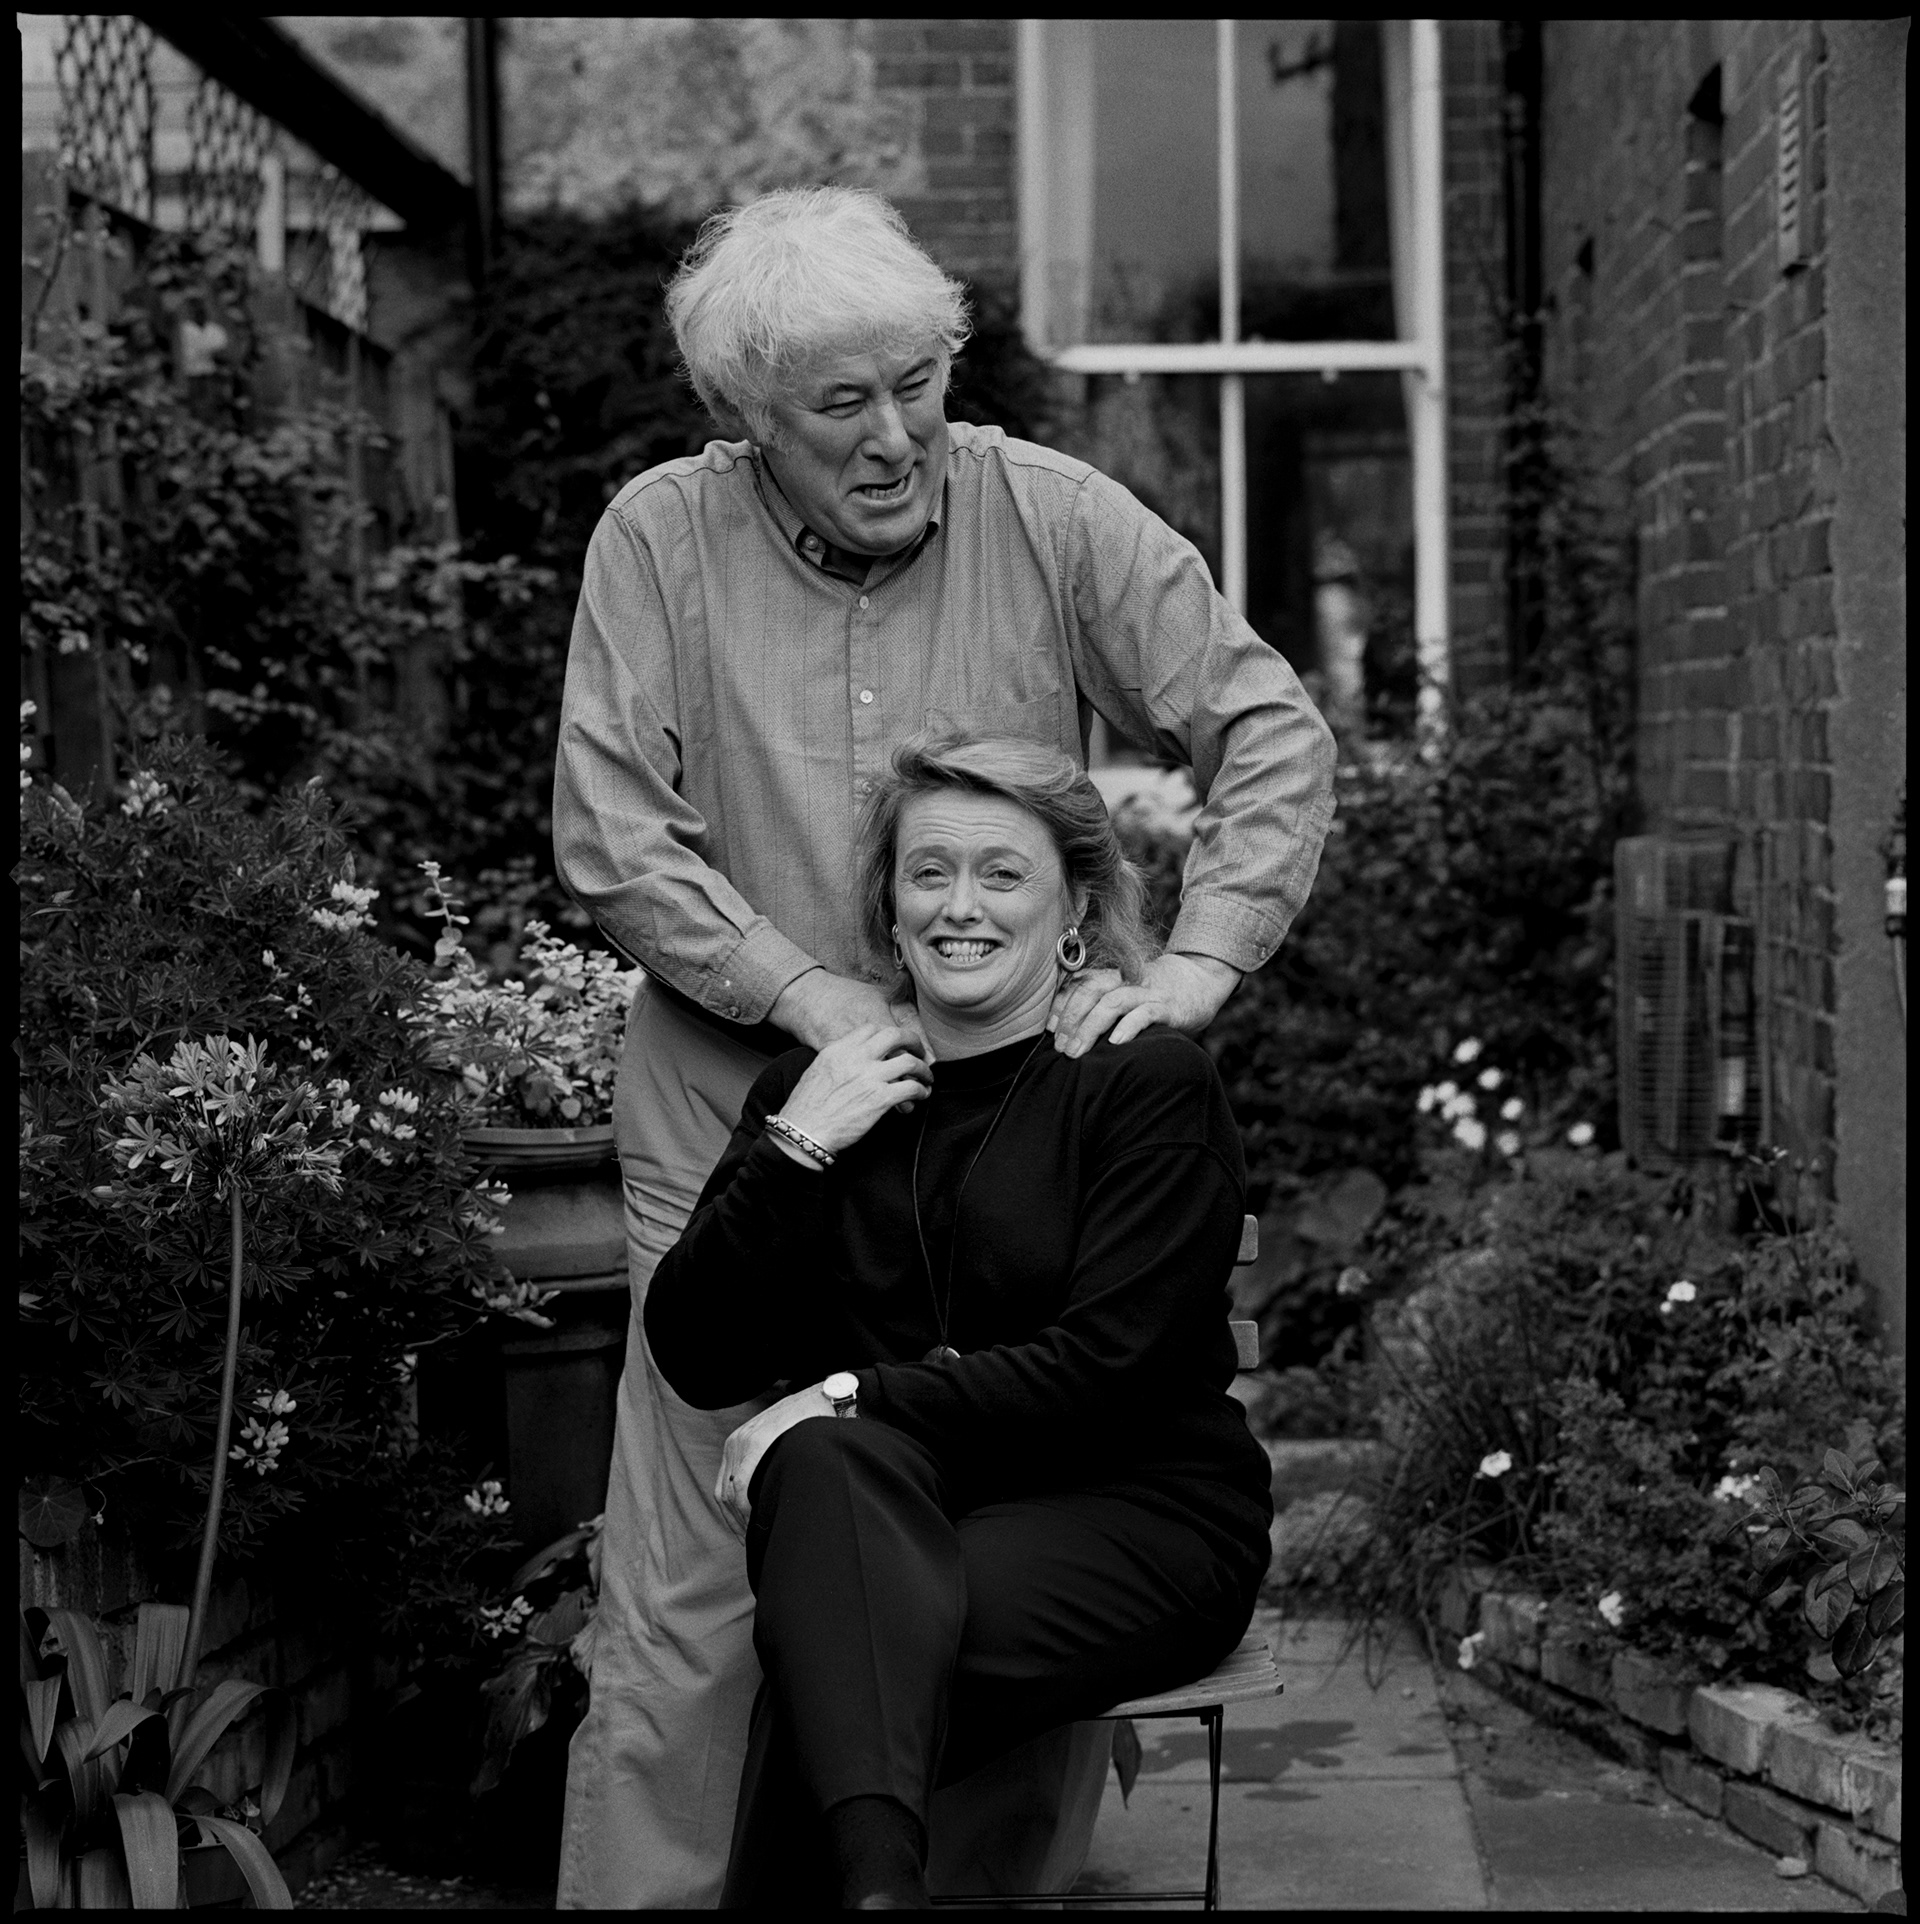 Seamus Heaney, poet, and Marie Heaney, writer.